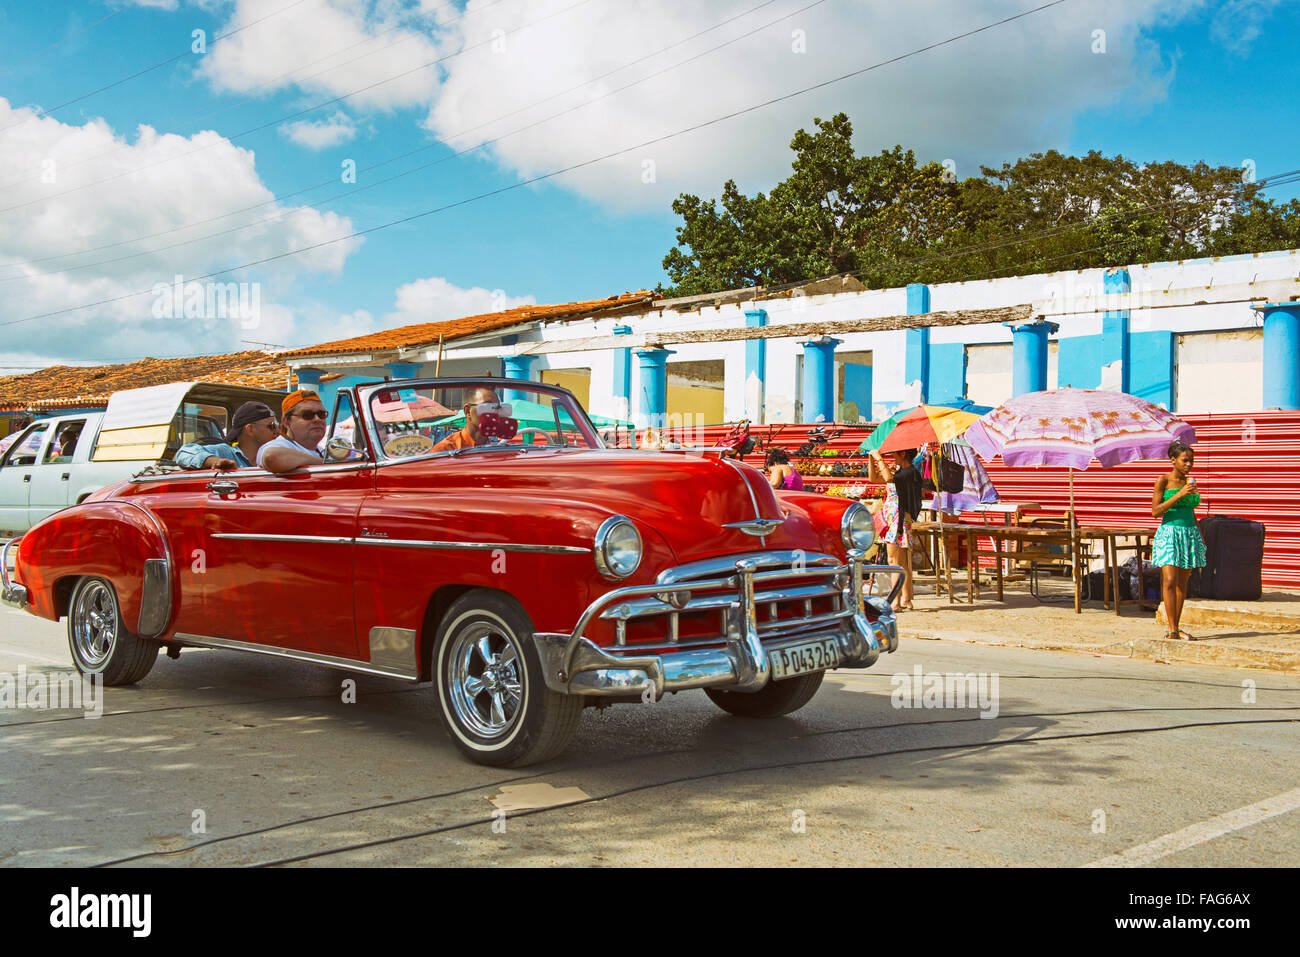 Classic Car Cuba, Vintage Old Taxi Tour through the town of Vinales - Stock Image